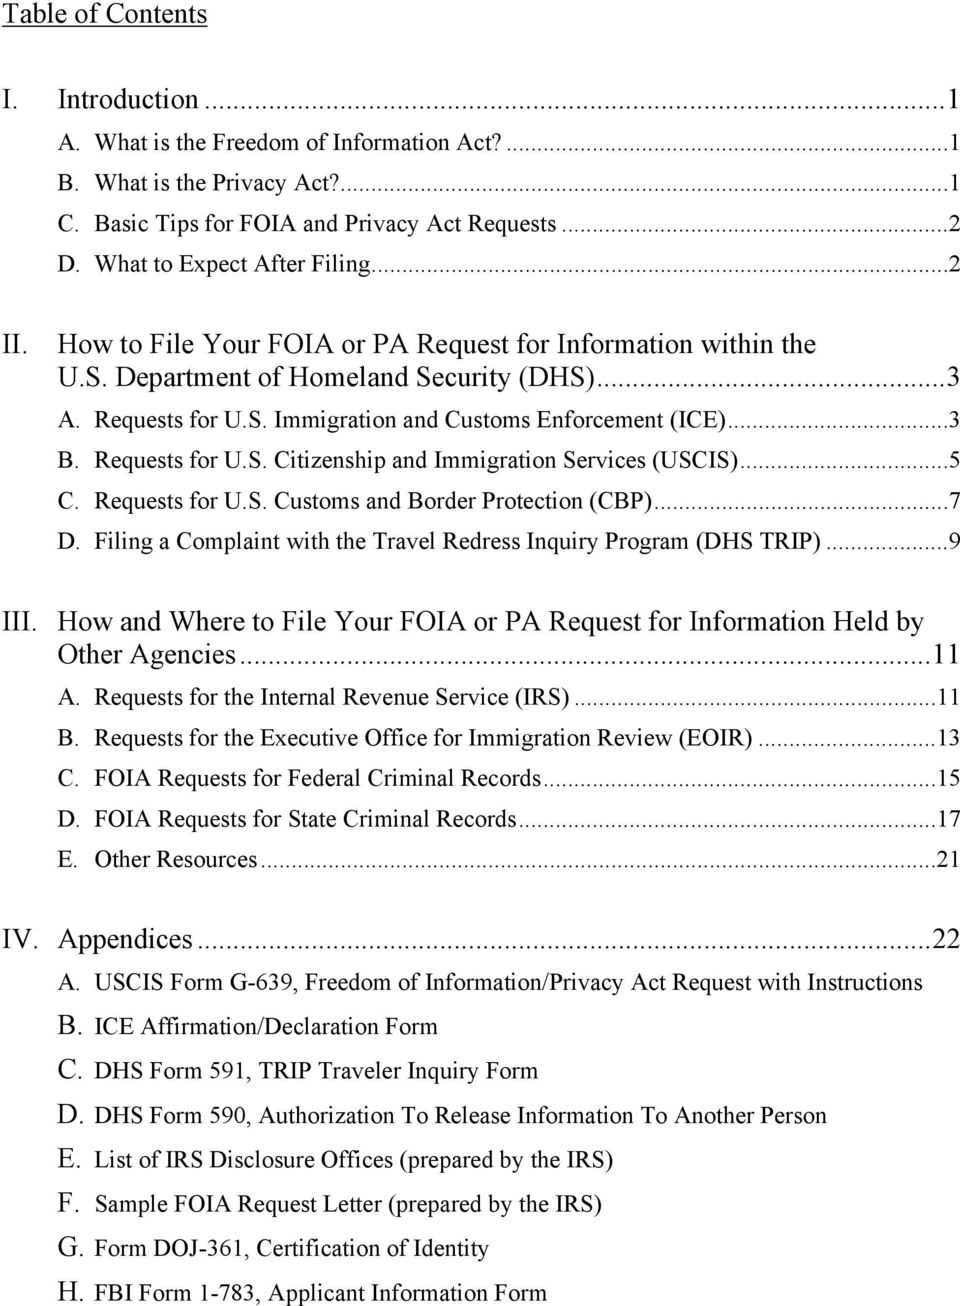 freedom of information act form letter